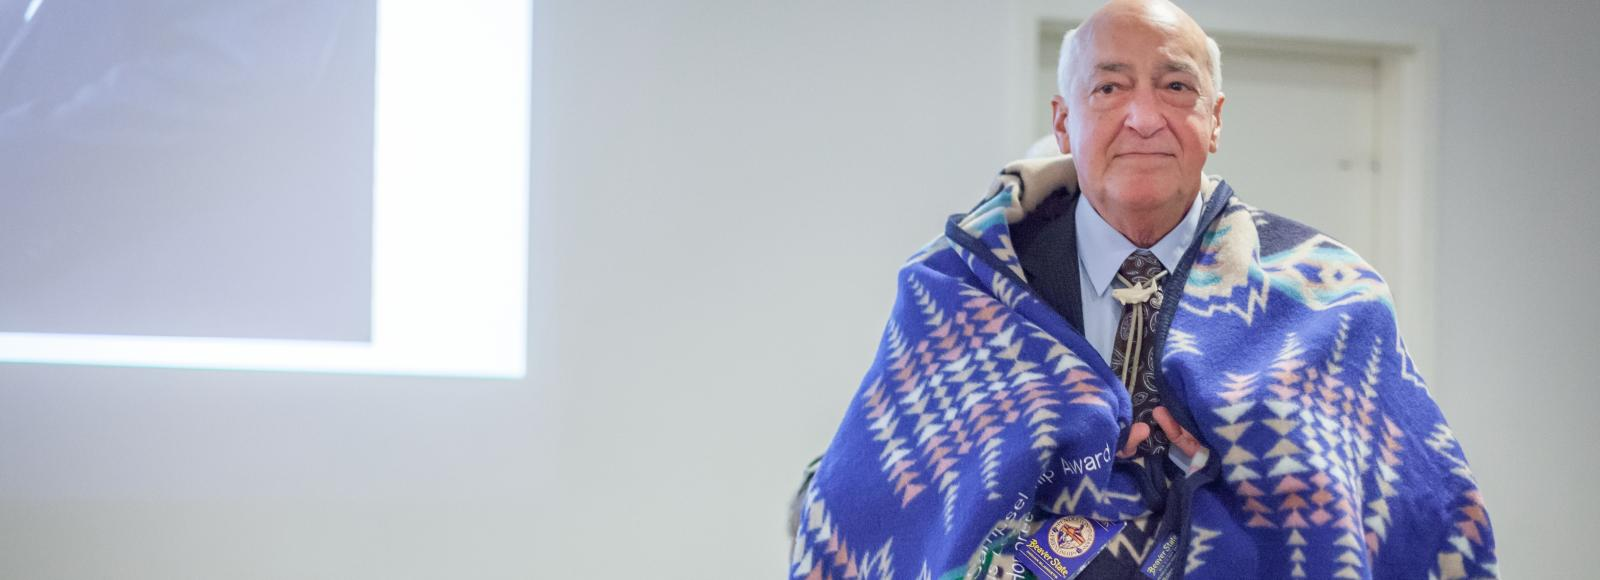 Blanketed in a Pendleton blanket, indigenous leader Roy Sampsel is honored at the ILA ceremony